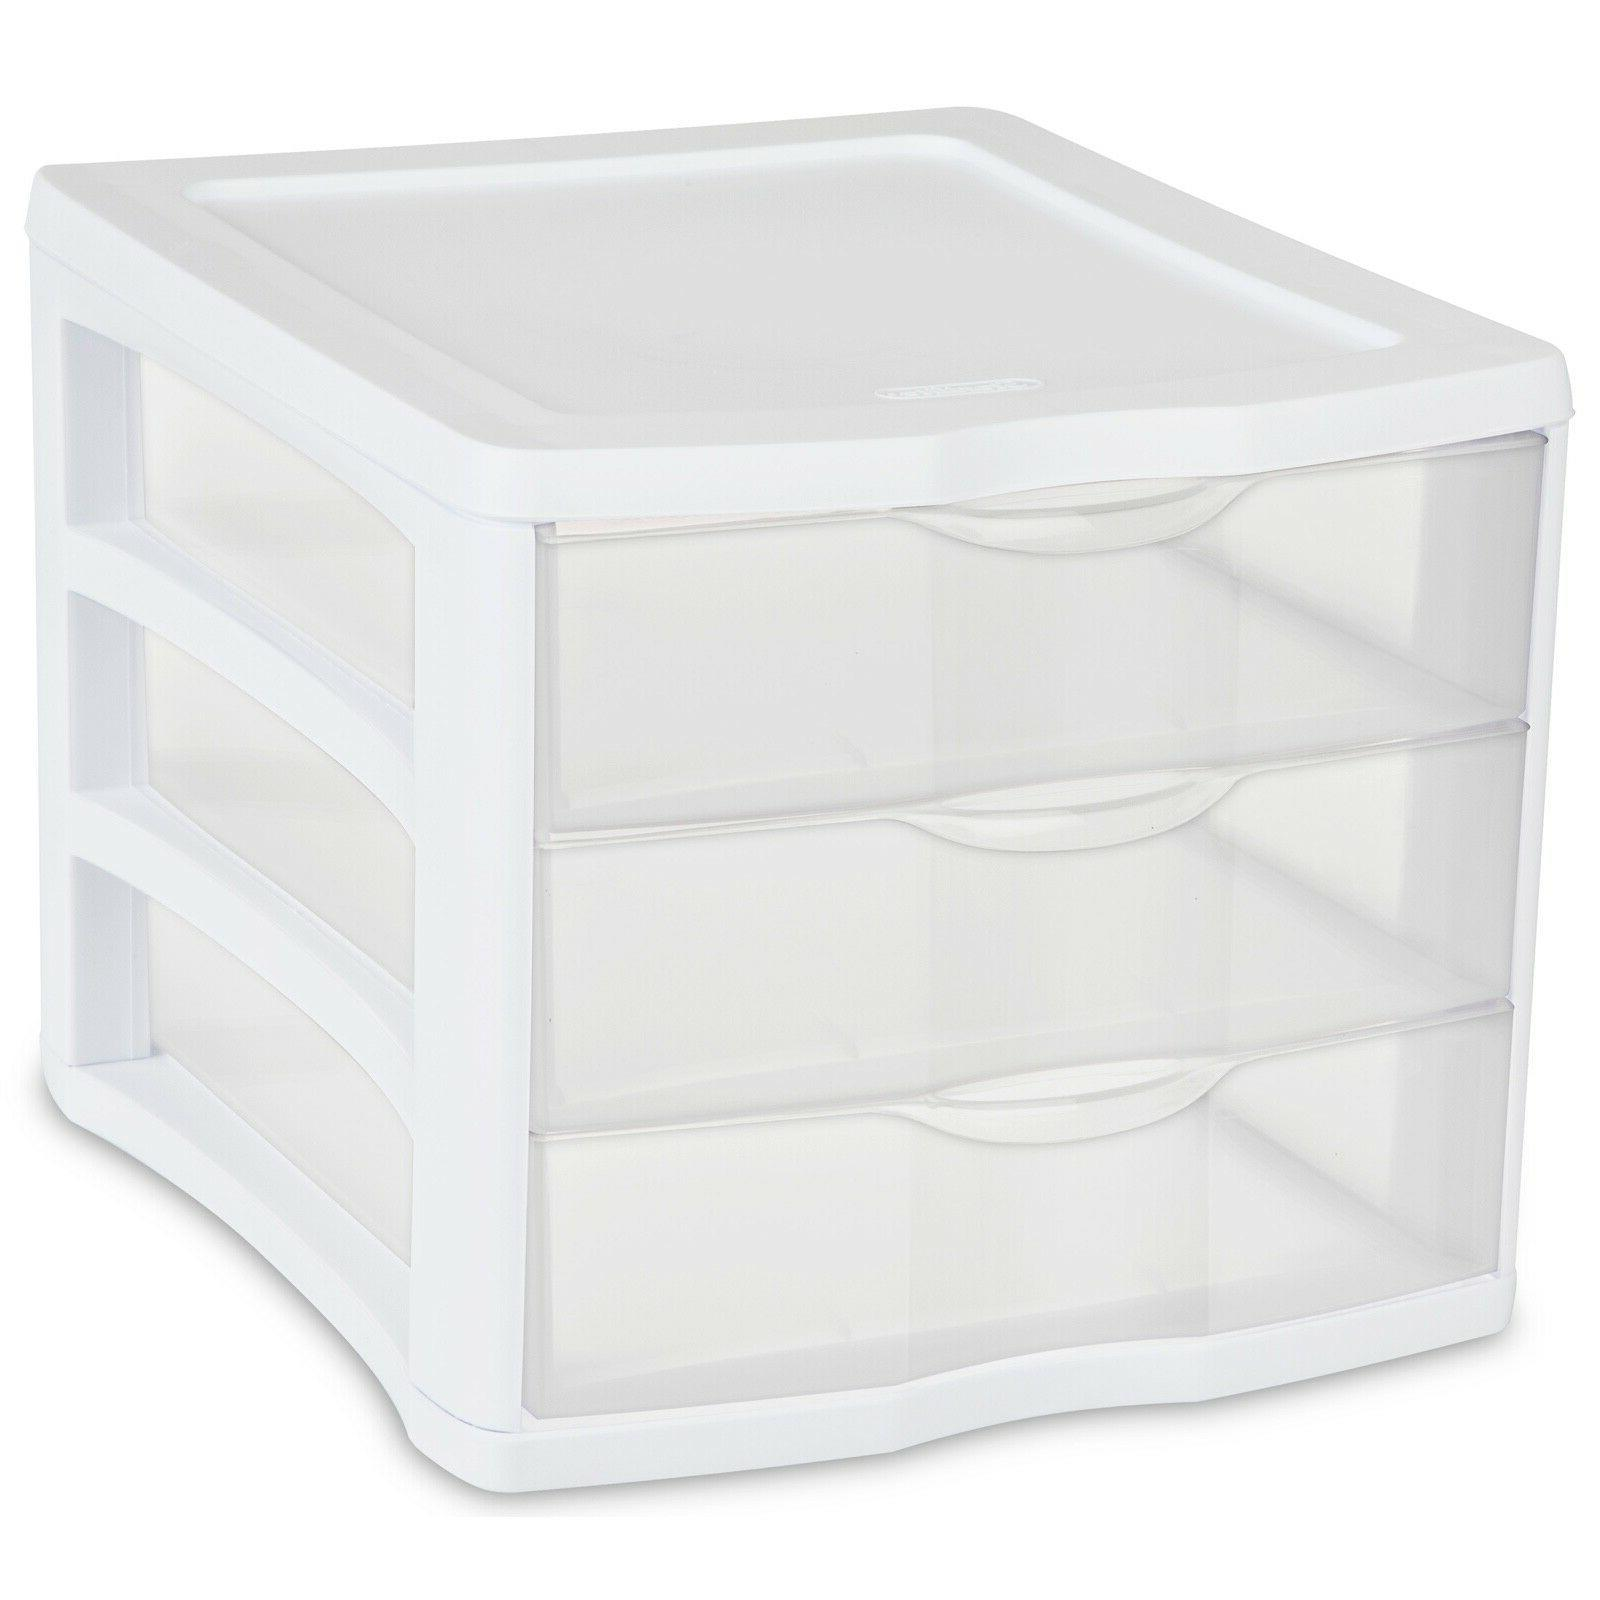 4-PACK Plastic Drawer Unit, Frame, Clear Drawers Small Storage Box